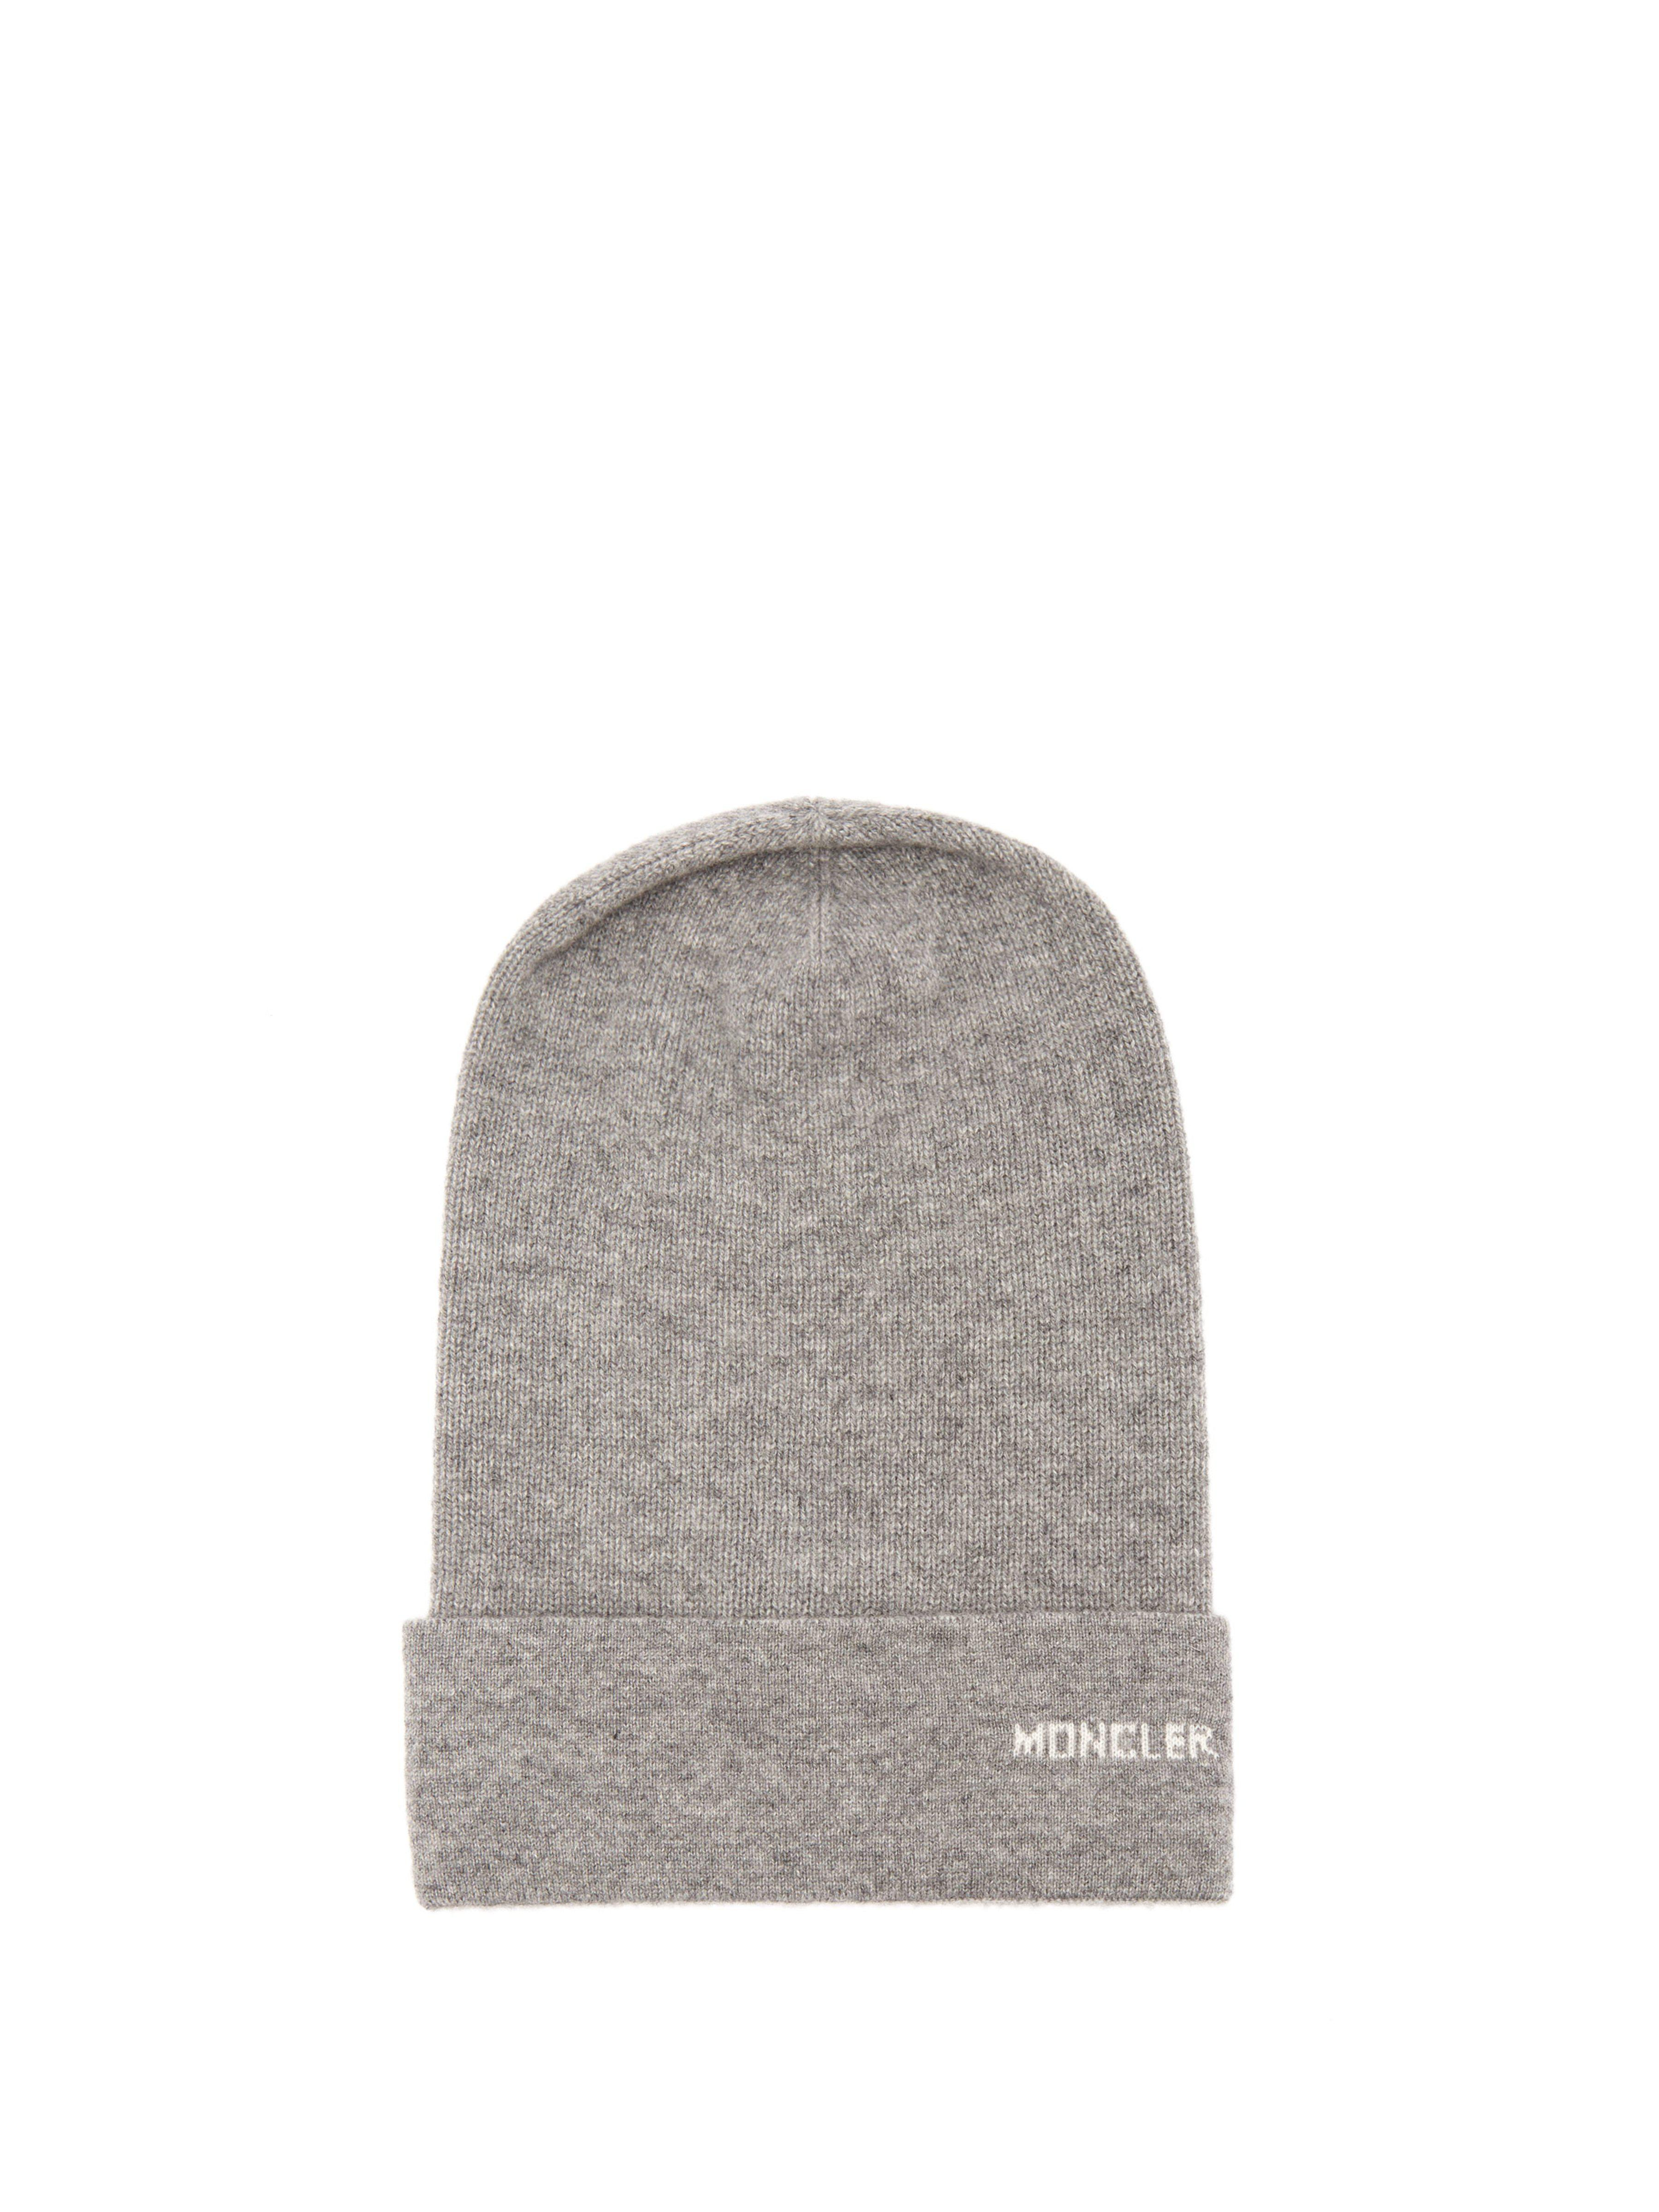 Moncler Logo Cashmere Beanie Hat in Gray - Lyst dd02397f31d6